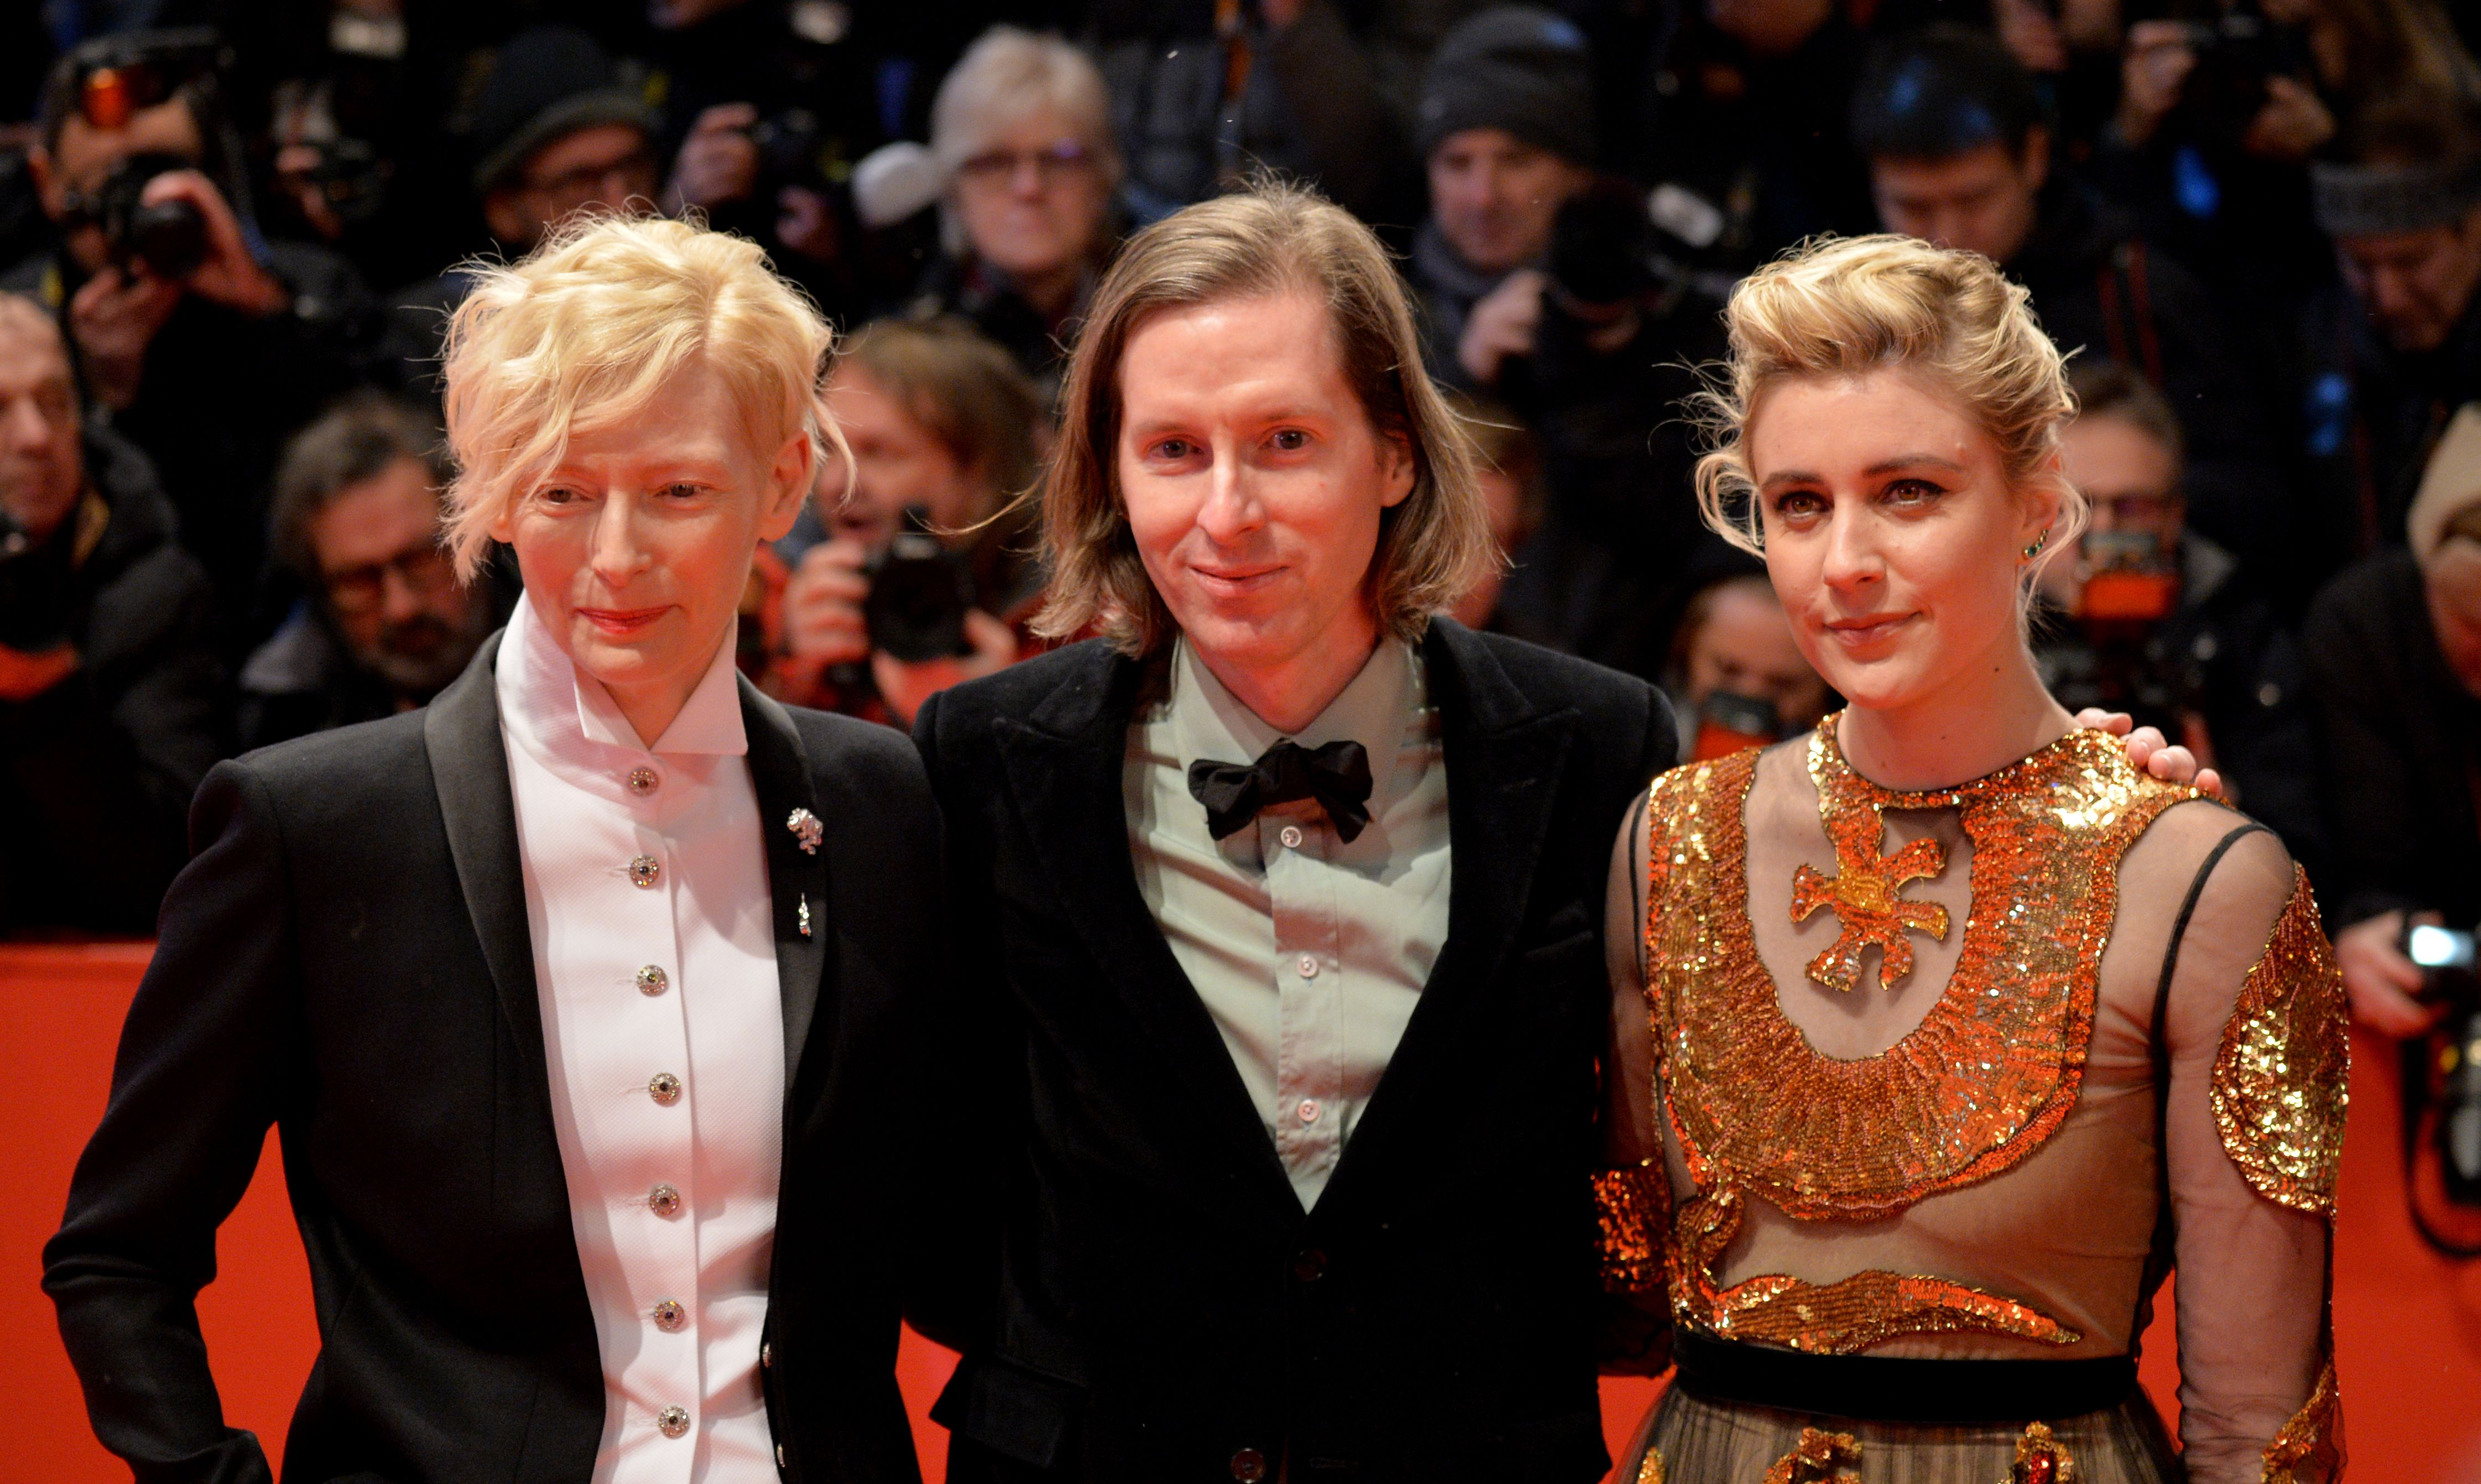 (L-R) Greta Gerwig, Wes Anderson and Tilda Swinton arrive at the red carpet for the opening ceremony of the 68th annual Berlin International Film Festival (Berlinale), in Berlin, Germany, 15 February 2018. The Berlinale runs from 15 to 25 February.Opening Ceremony - 68th Berlin Film Festival, Germany - 15 Feb 2018